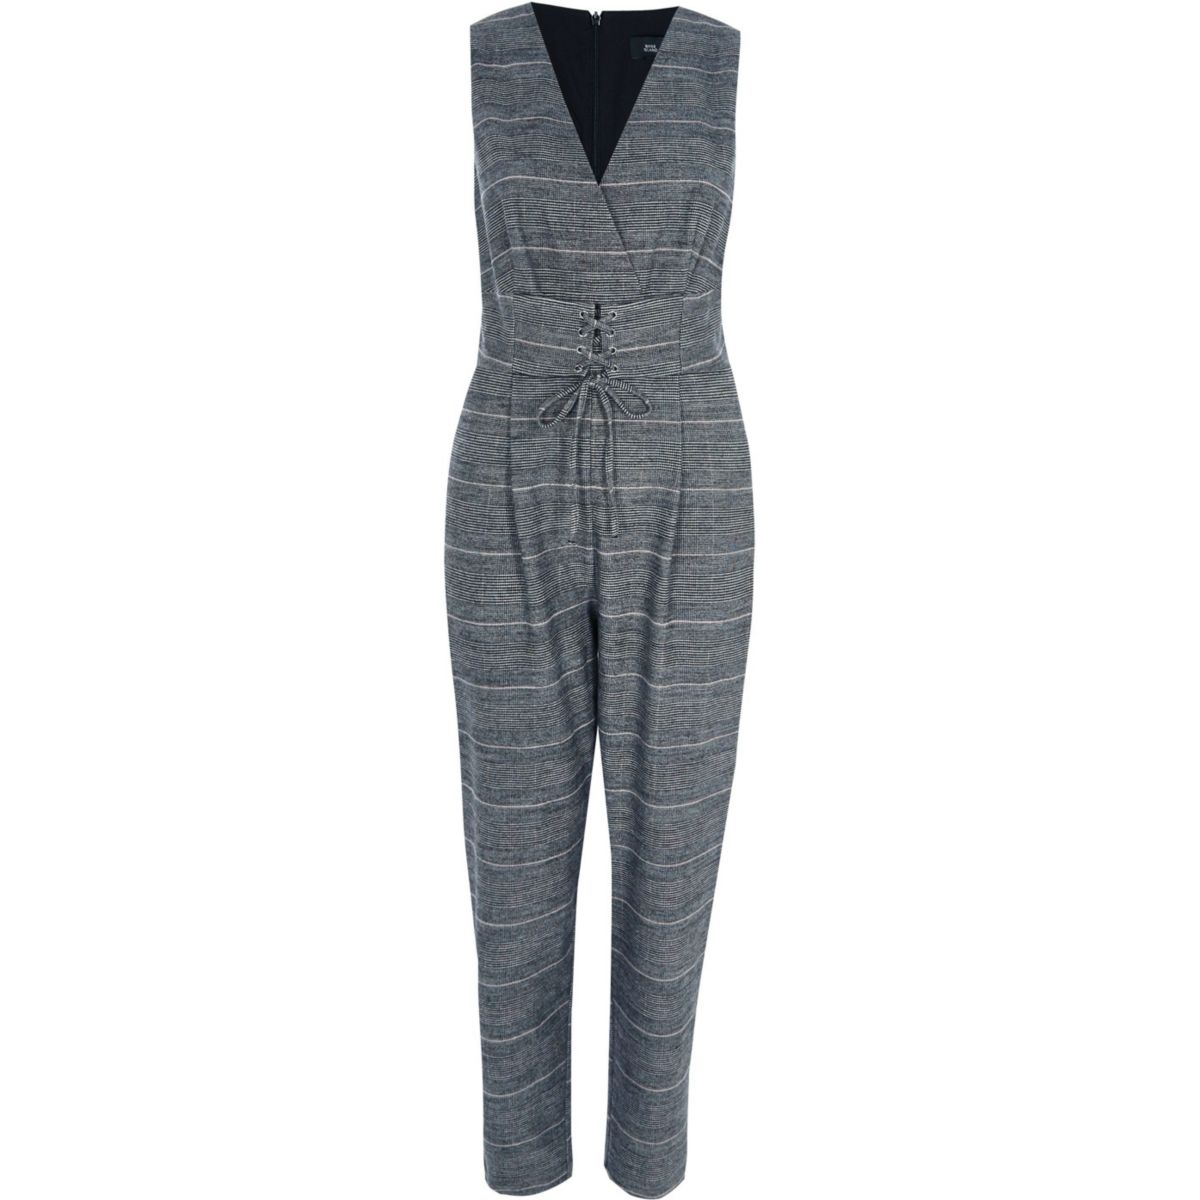 Grey check corset waist belt jumpsuit